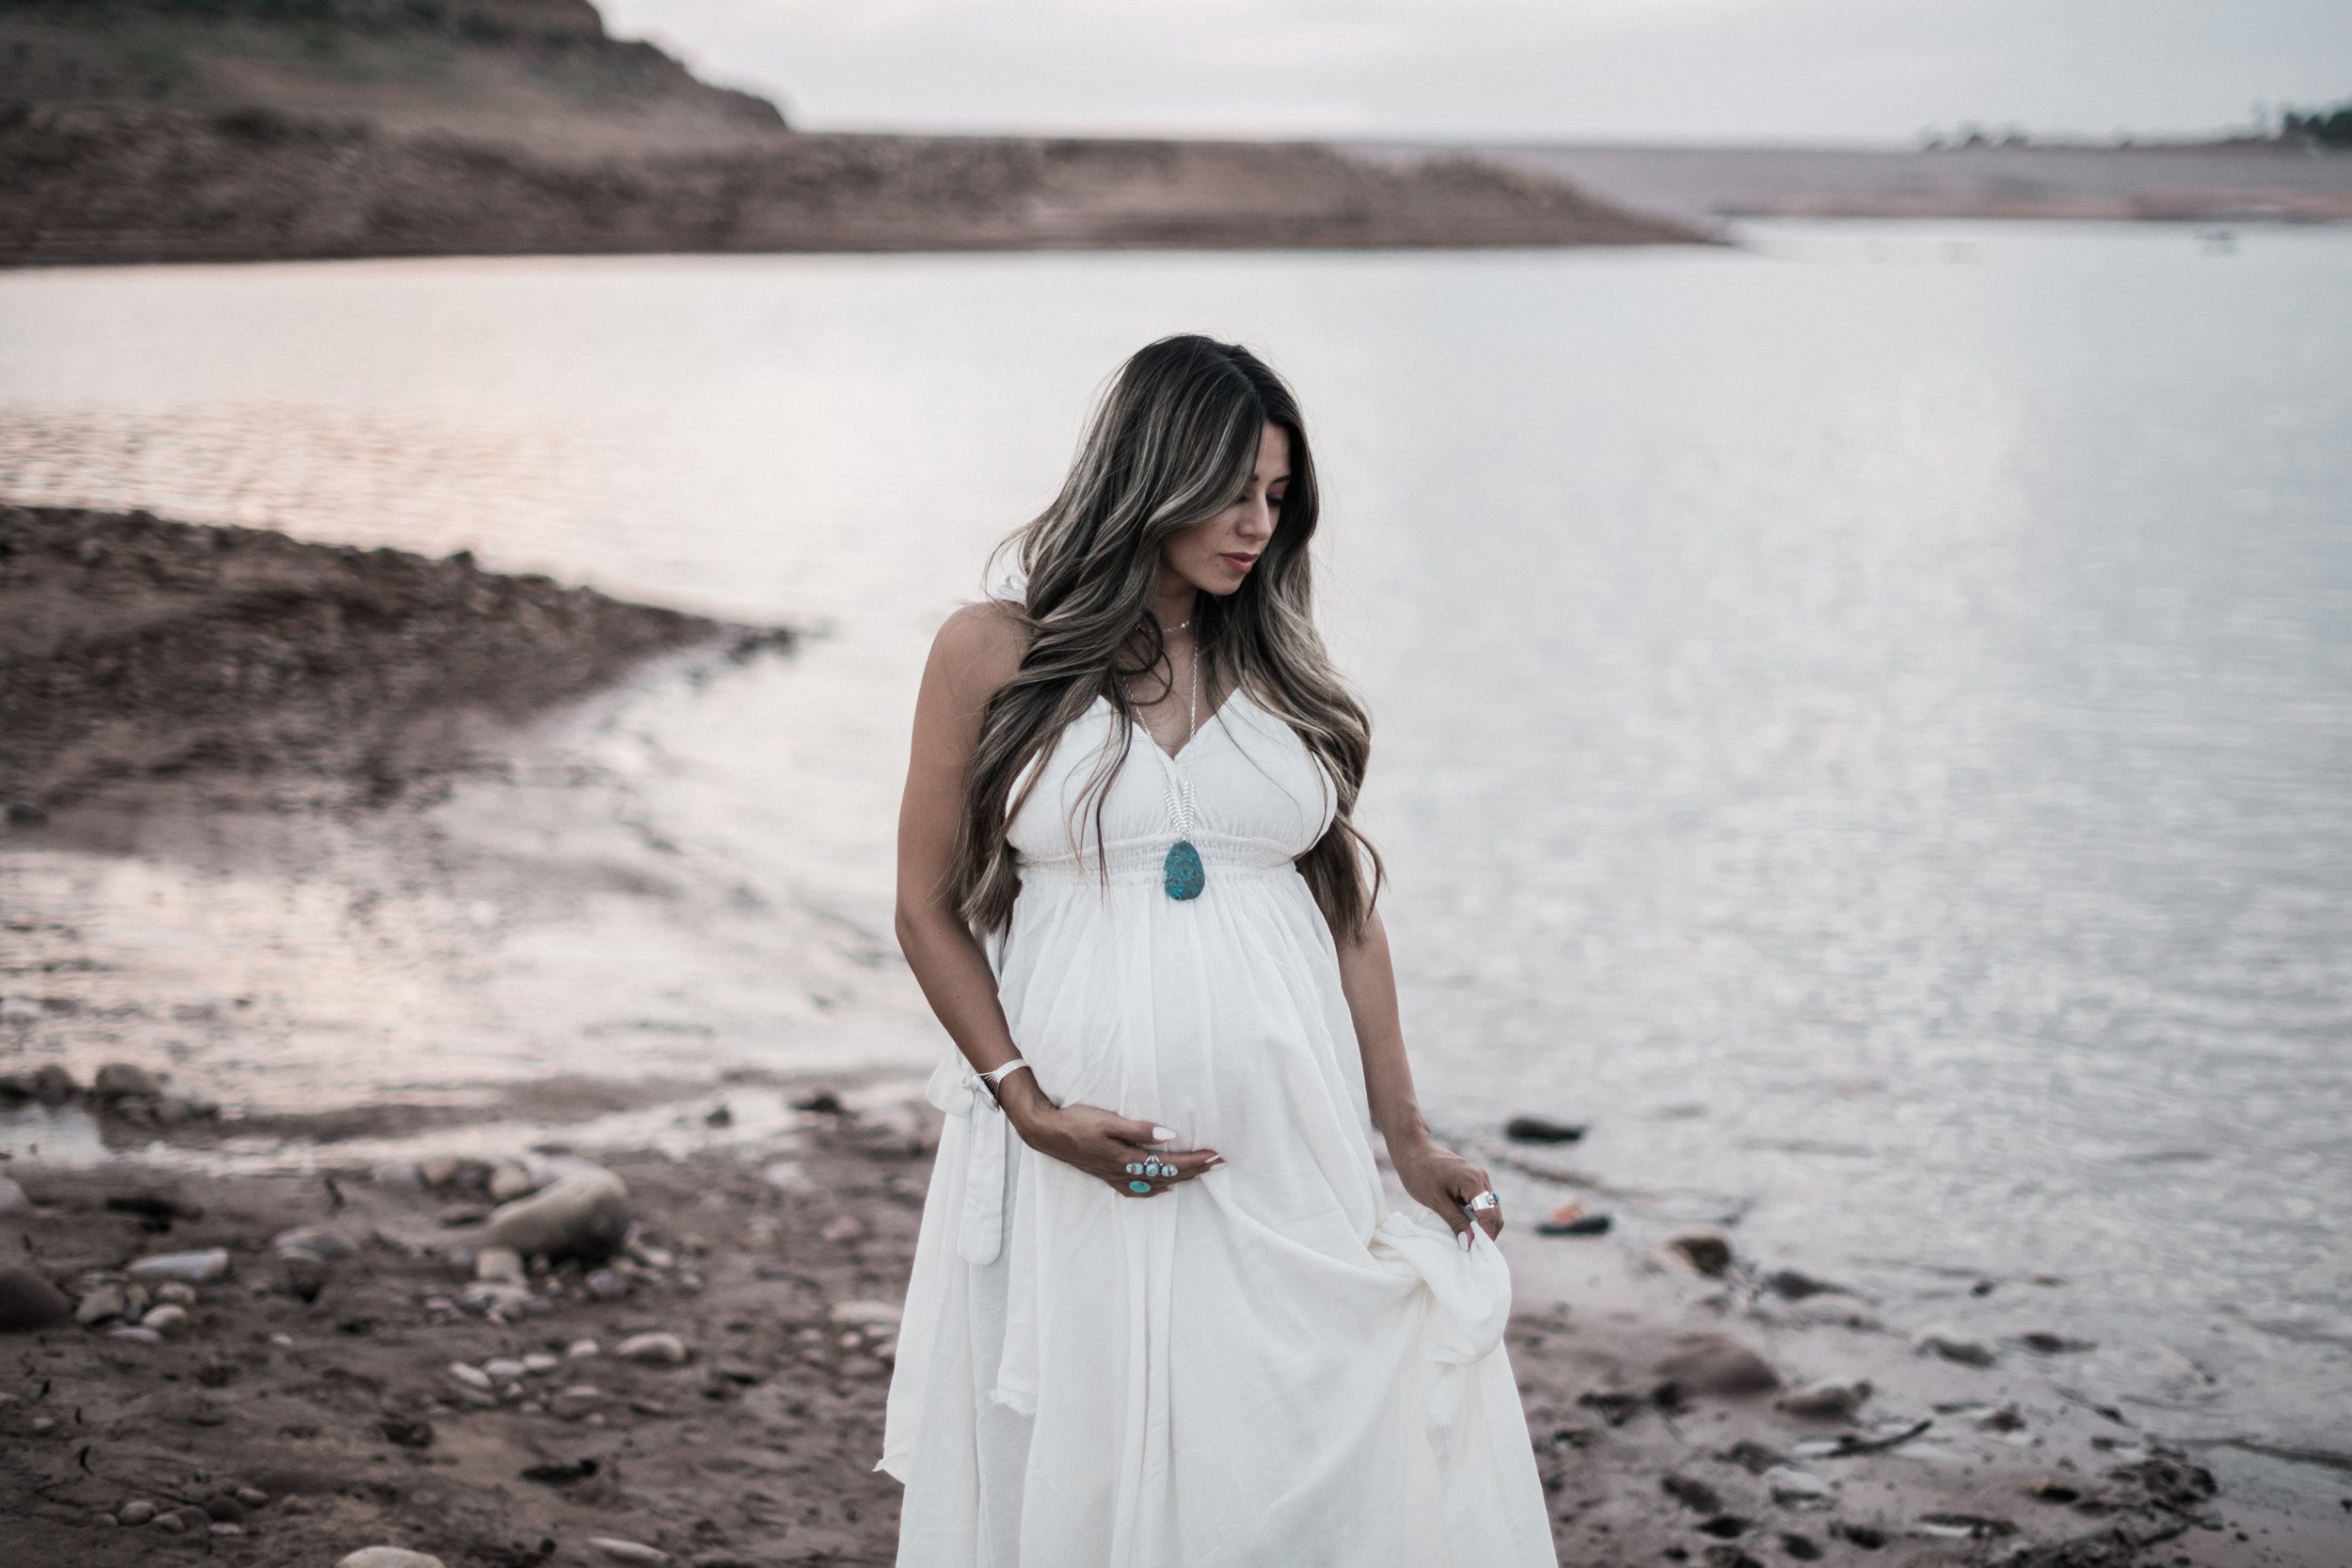 Pregnant woman on beach at lake turquoise necklace